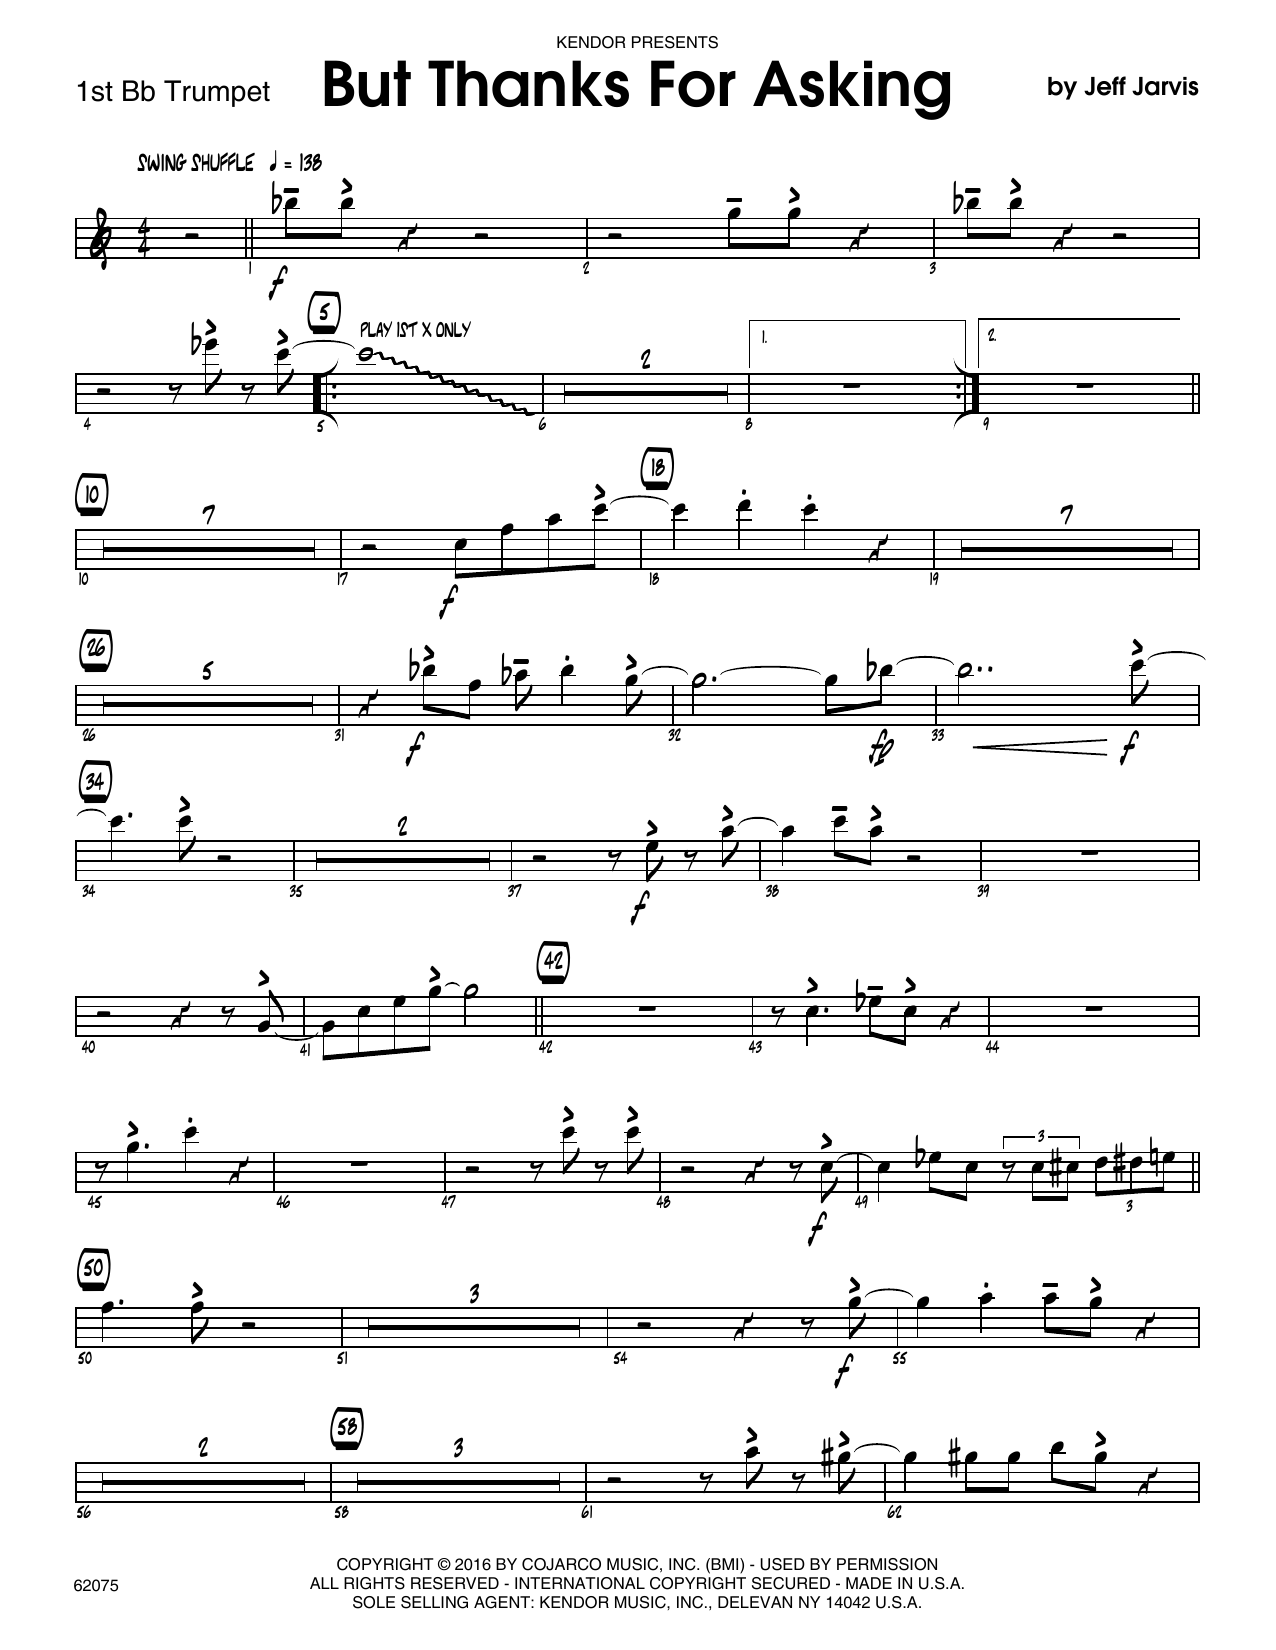 But Thanks For Asking - 1st Bb Trumpet Sheet Music